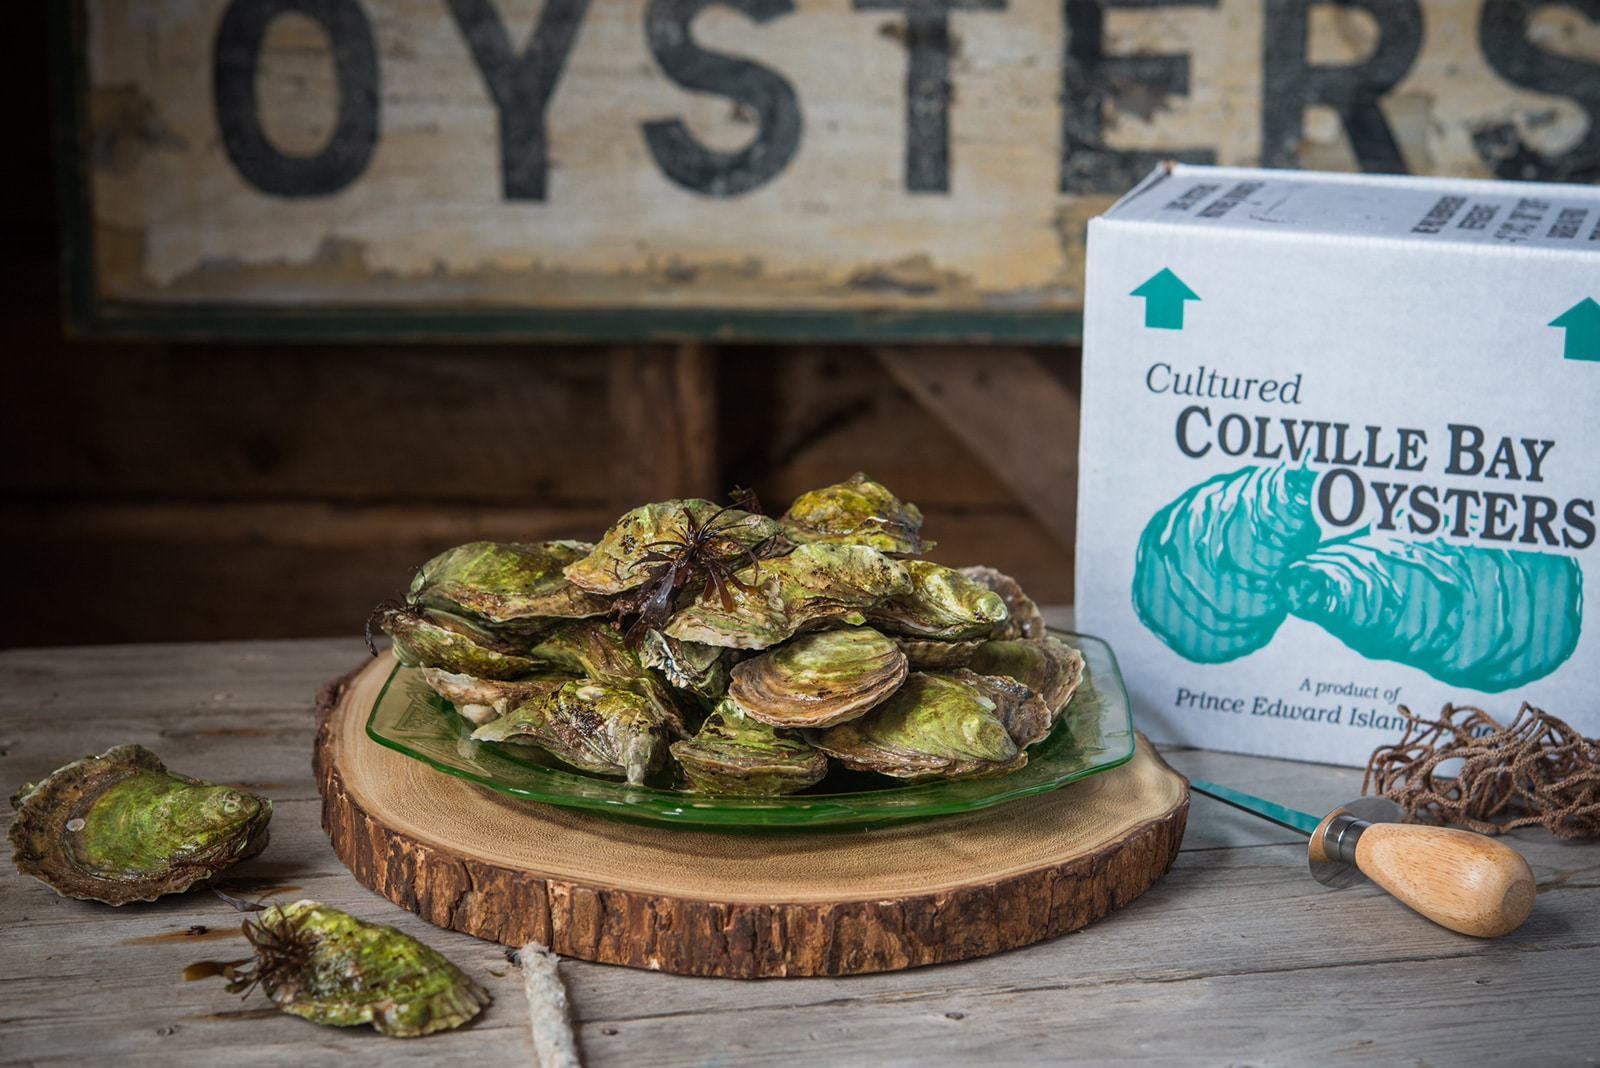 Colville Bay Oysters